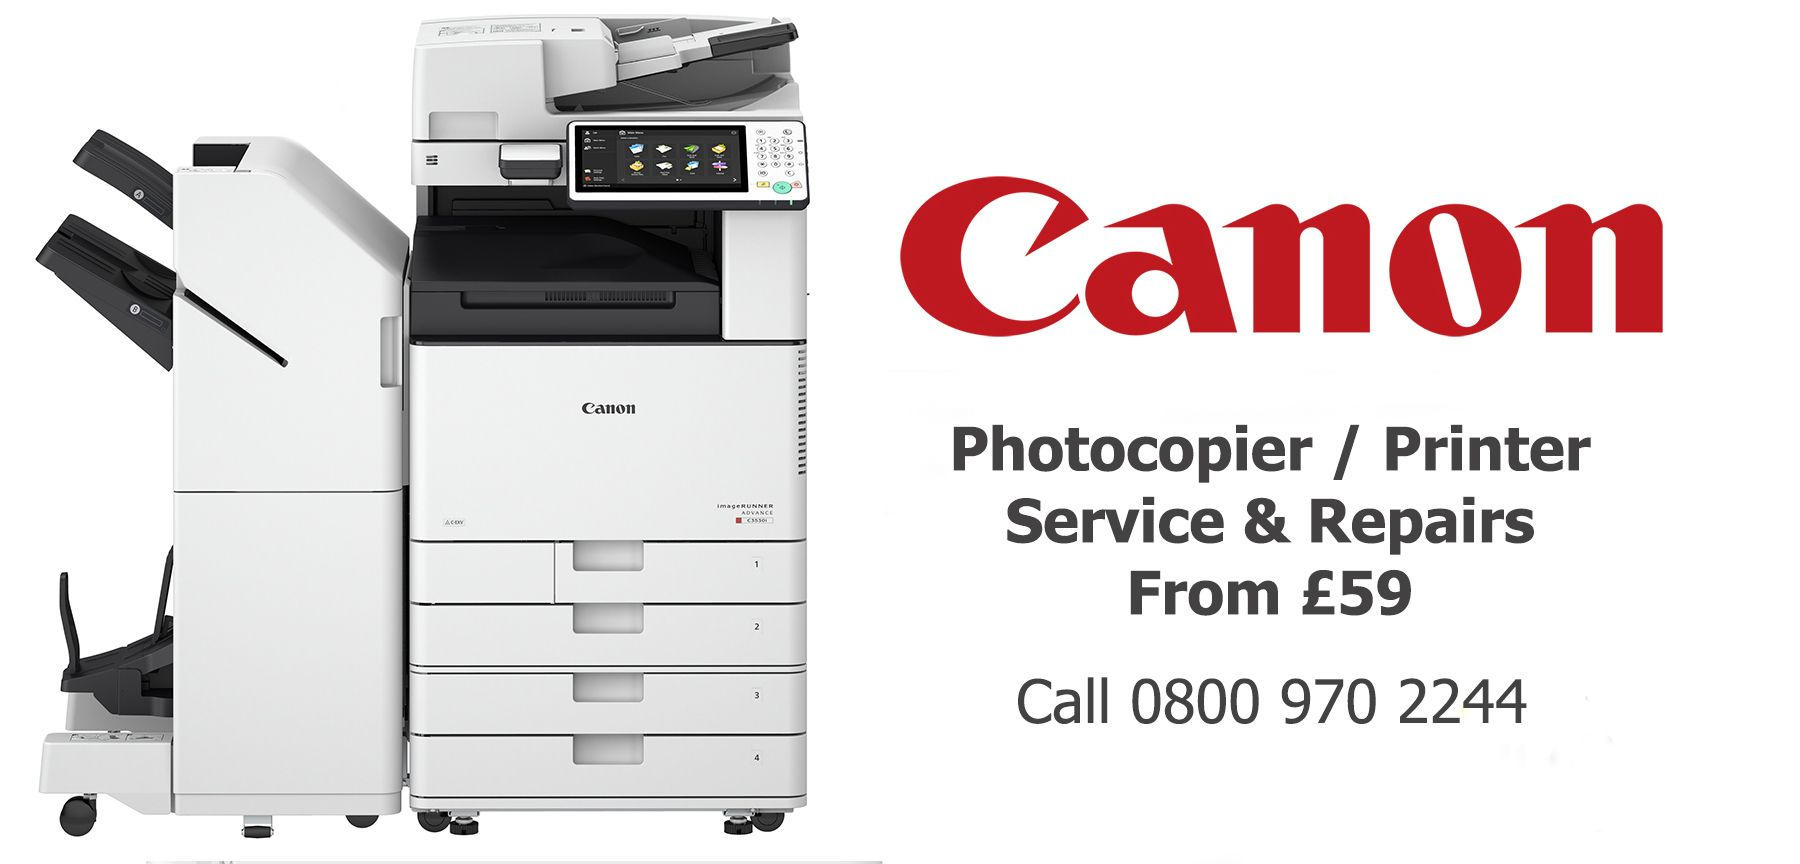 Canon photocopier service and printer repairs lancashire